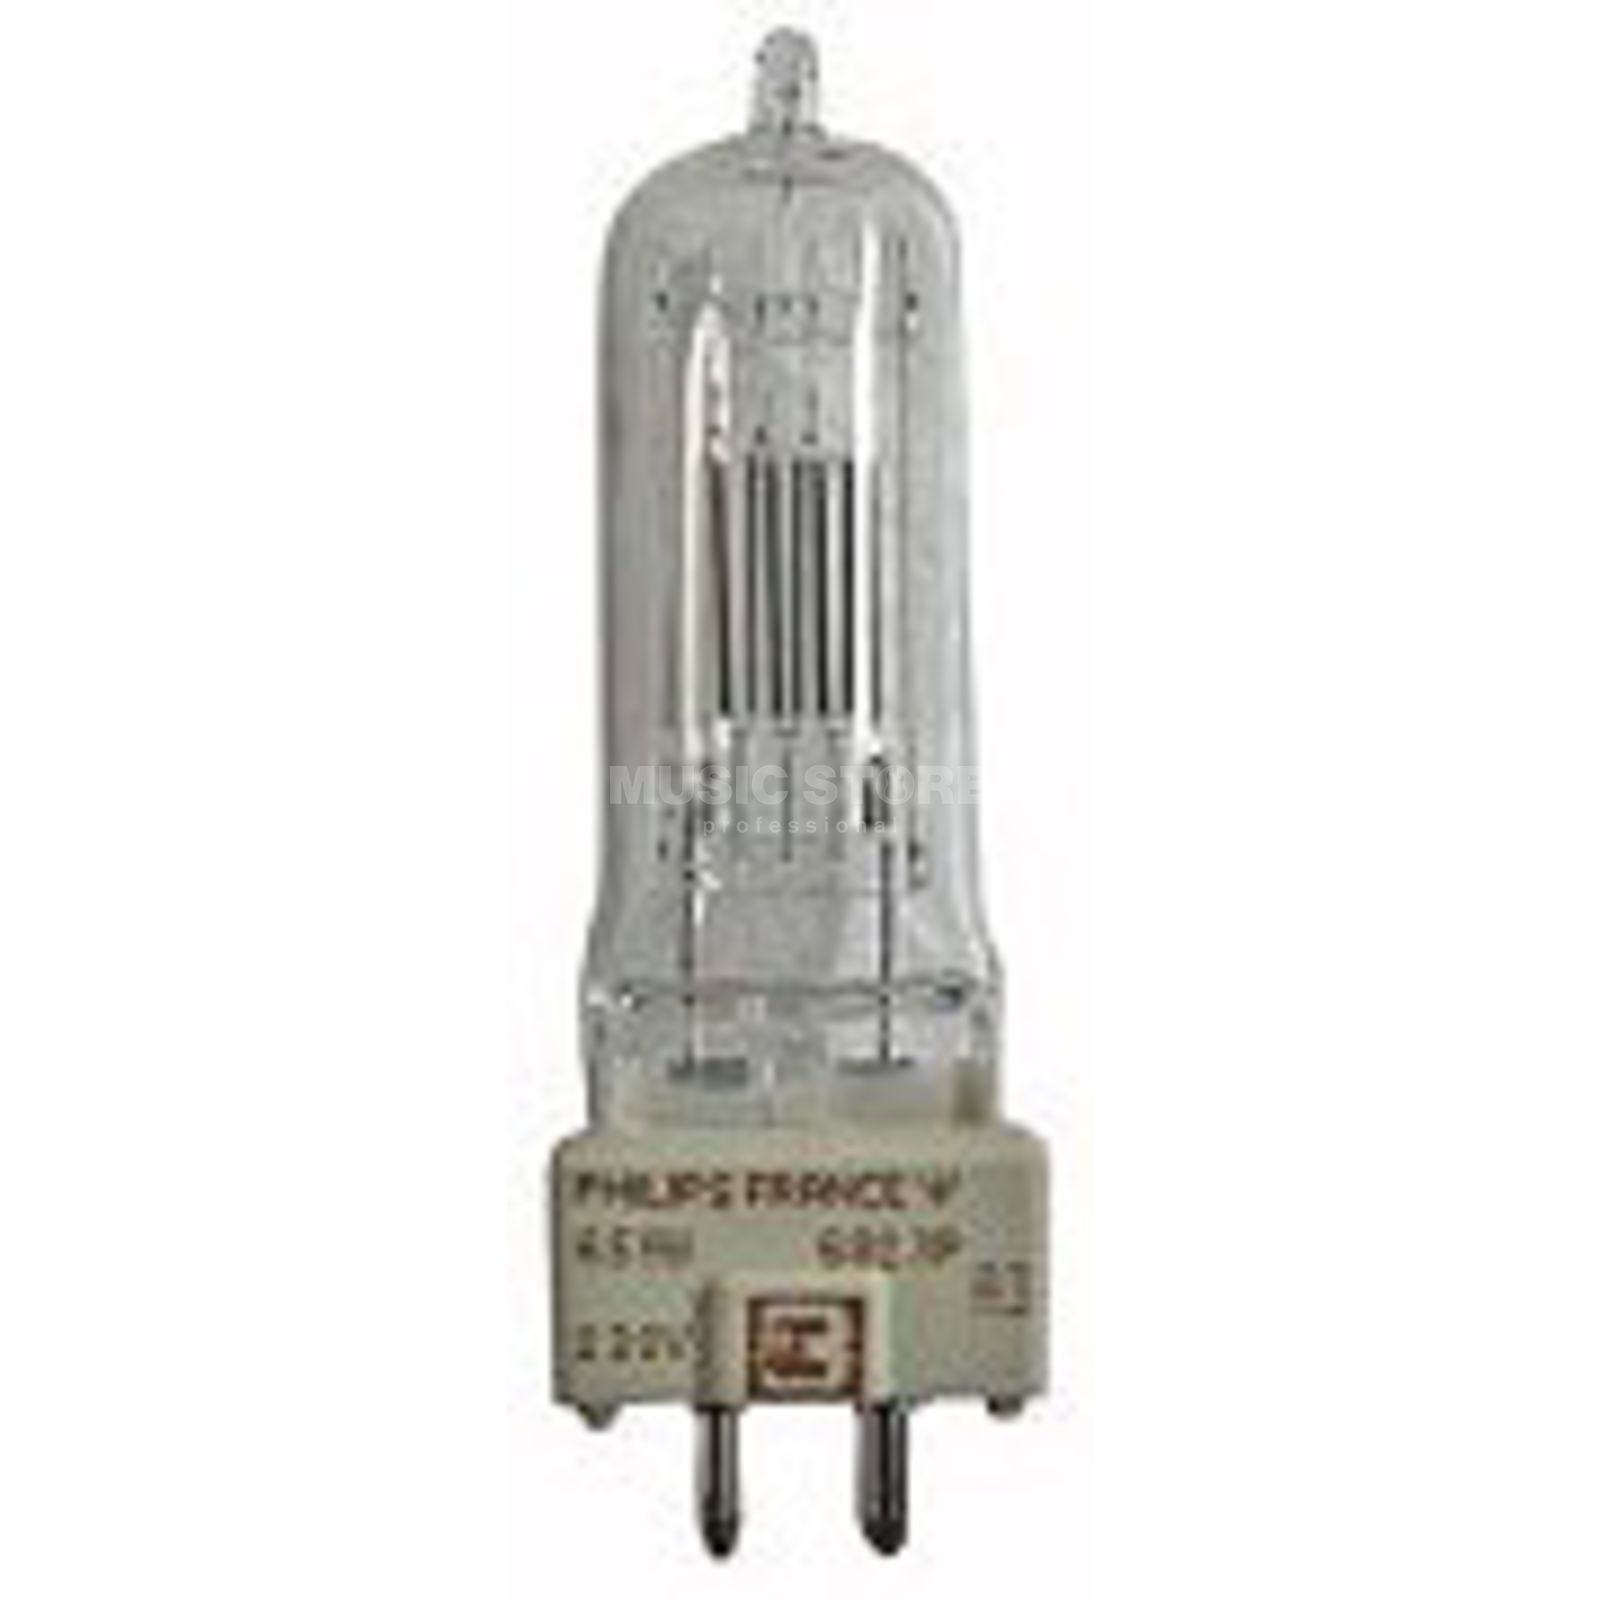 PHILIPS Bulb GY 9,5 650W  T27  PH  Product Image